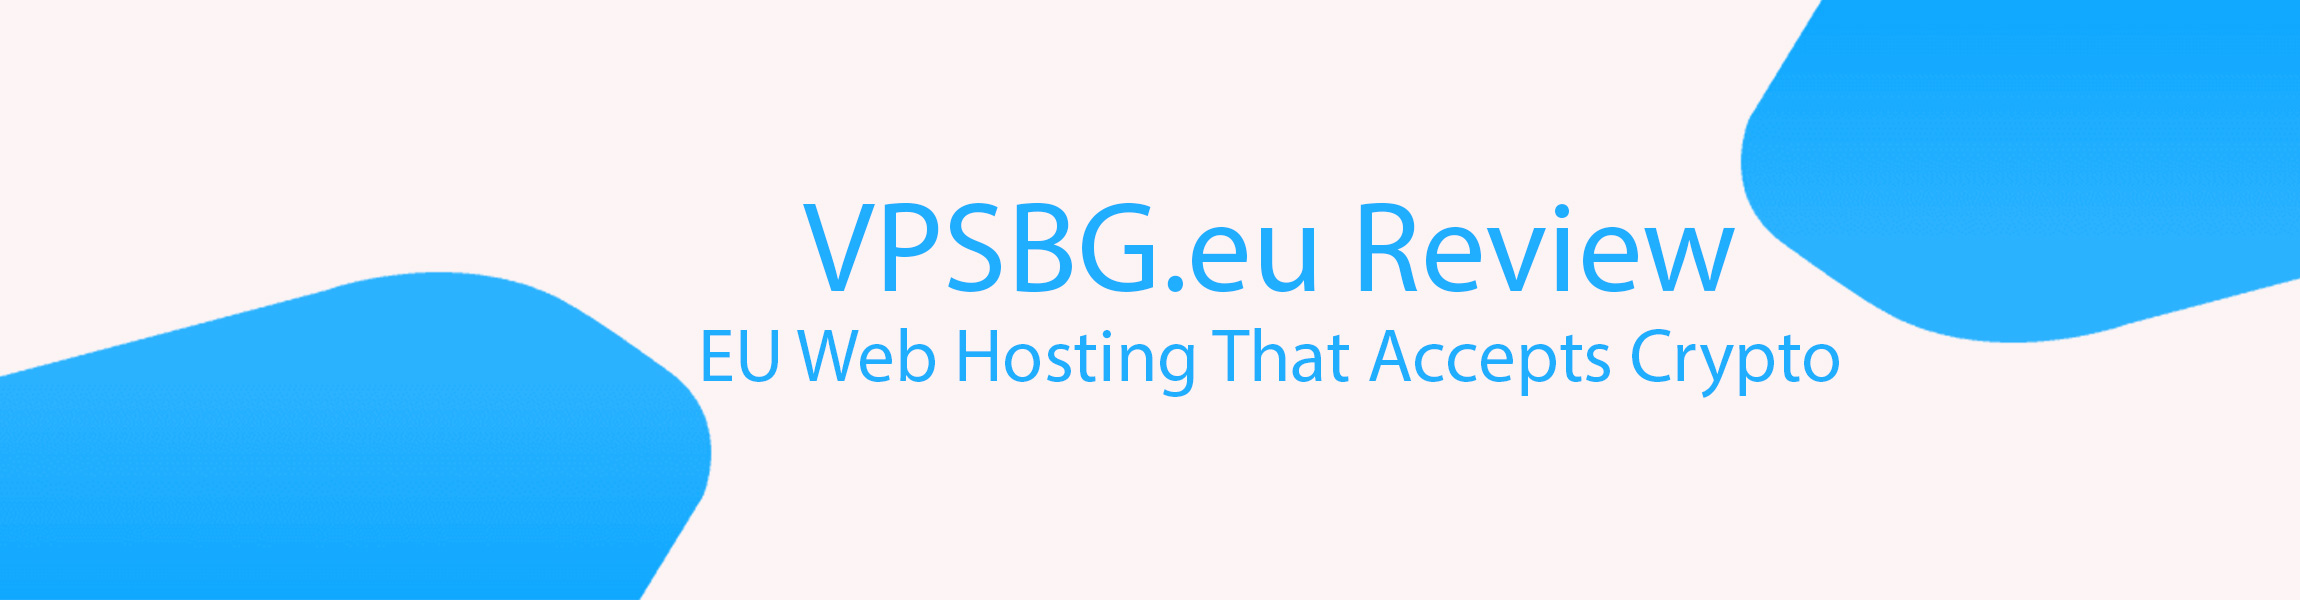 VPSBG.eu review